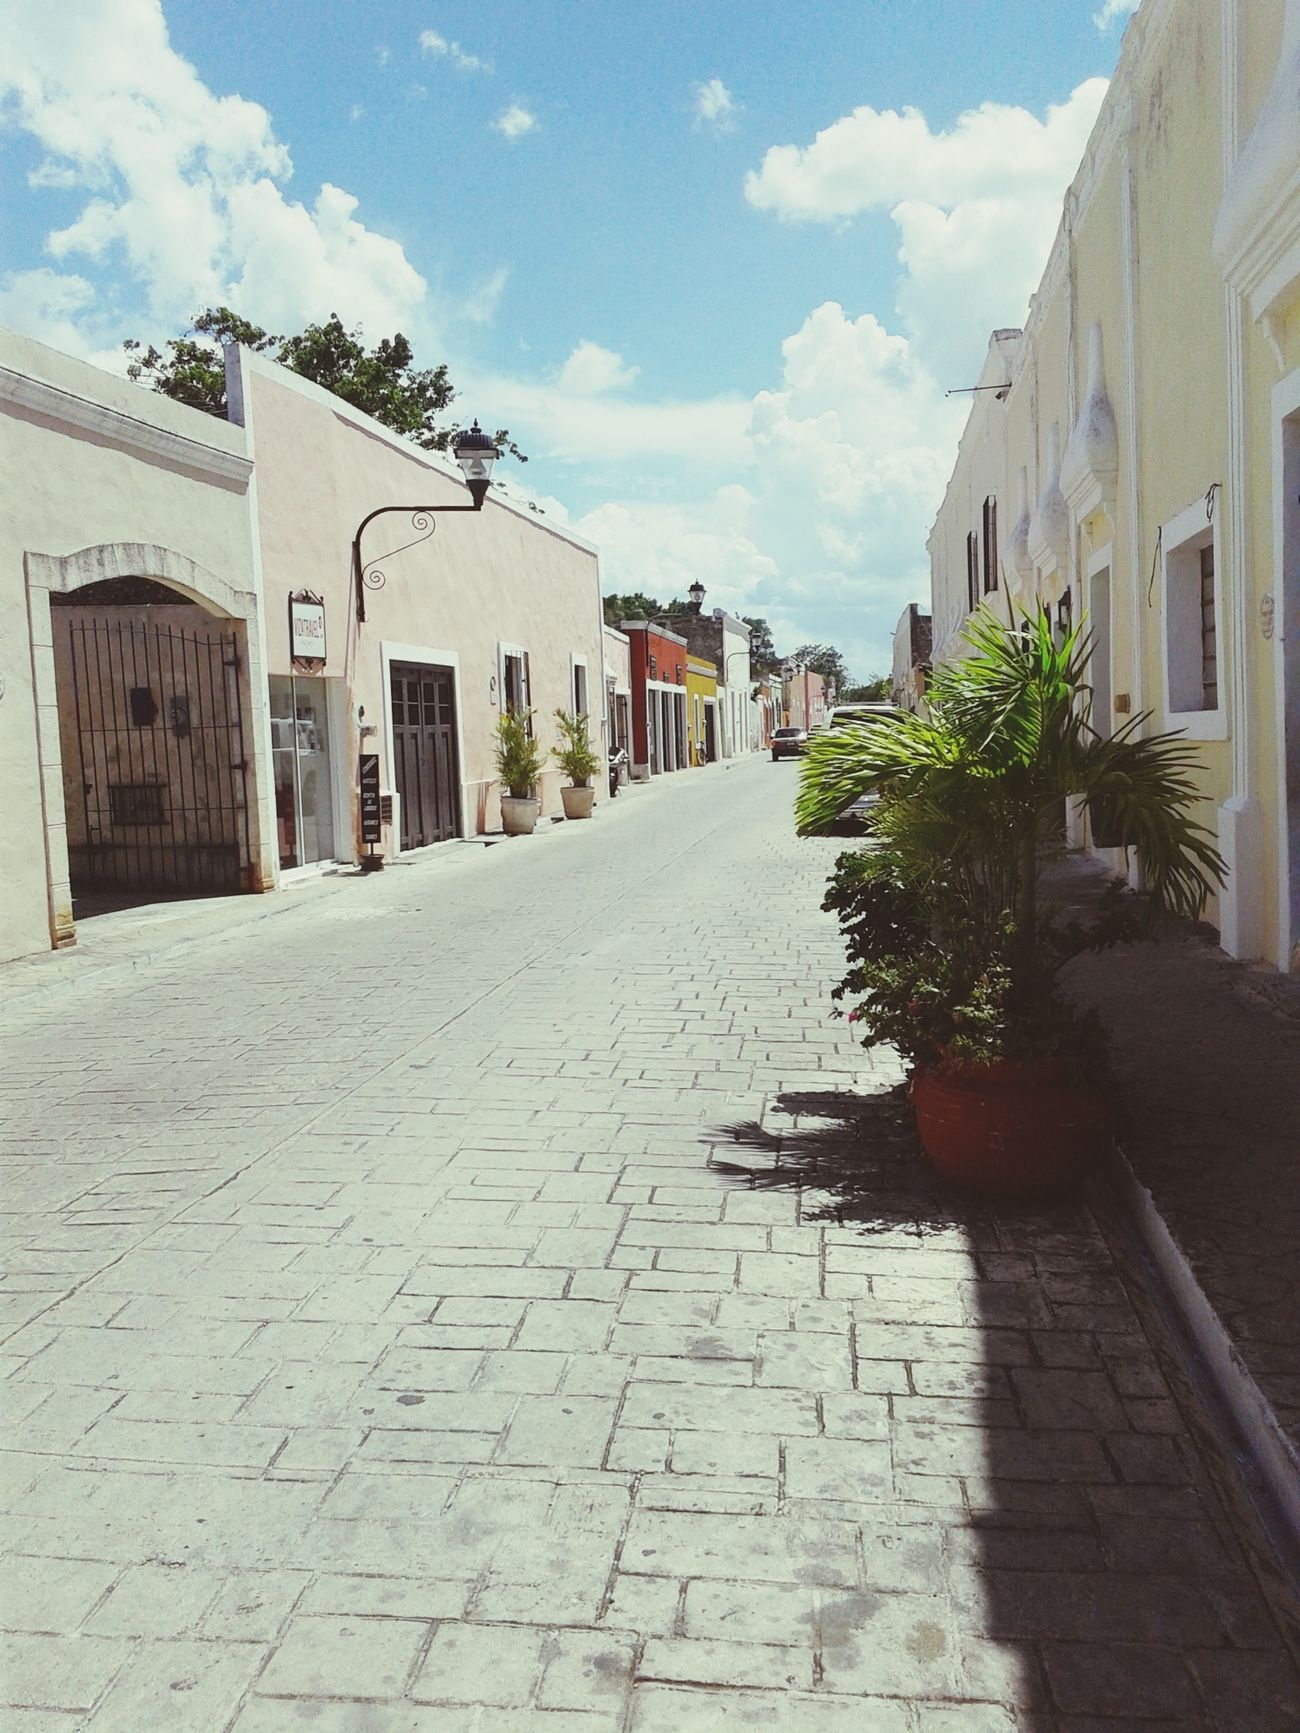 Streetphotography Taking Photos Built Structure Yucatan Mexico